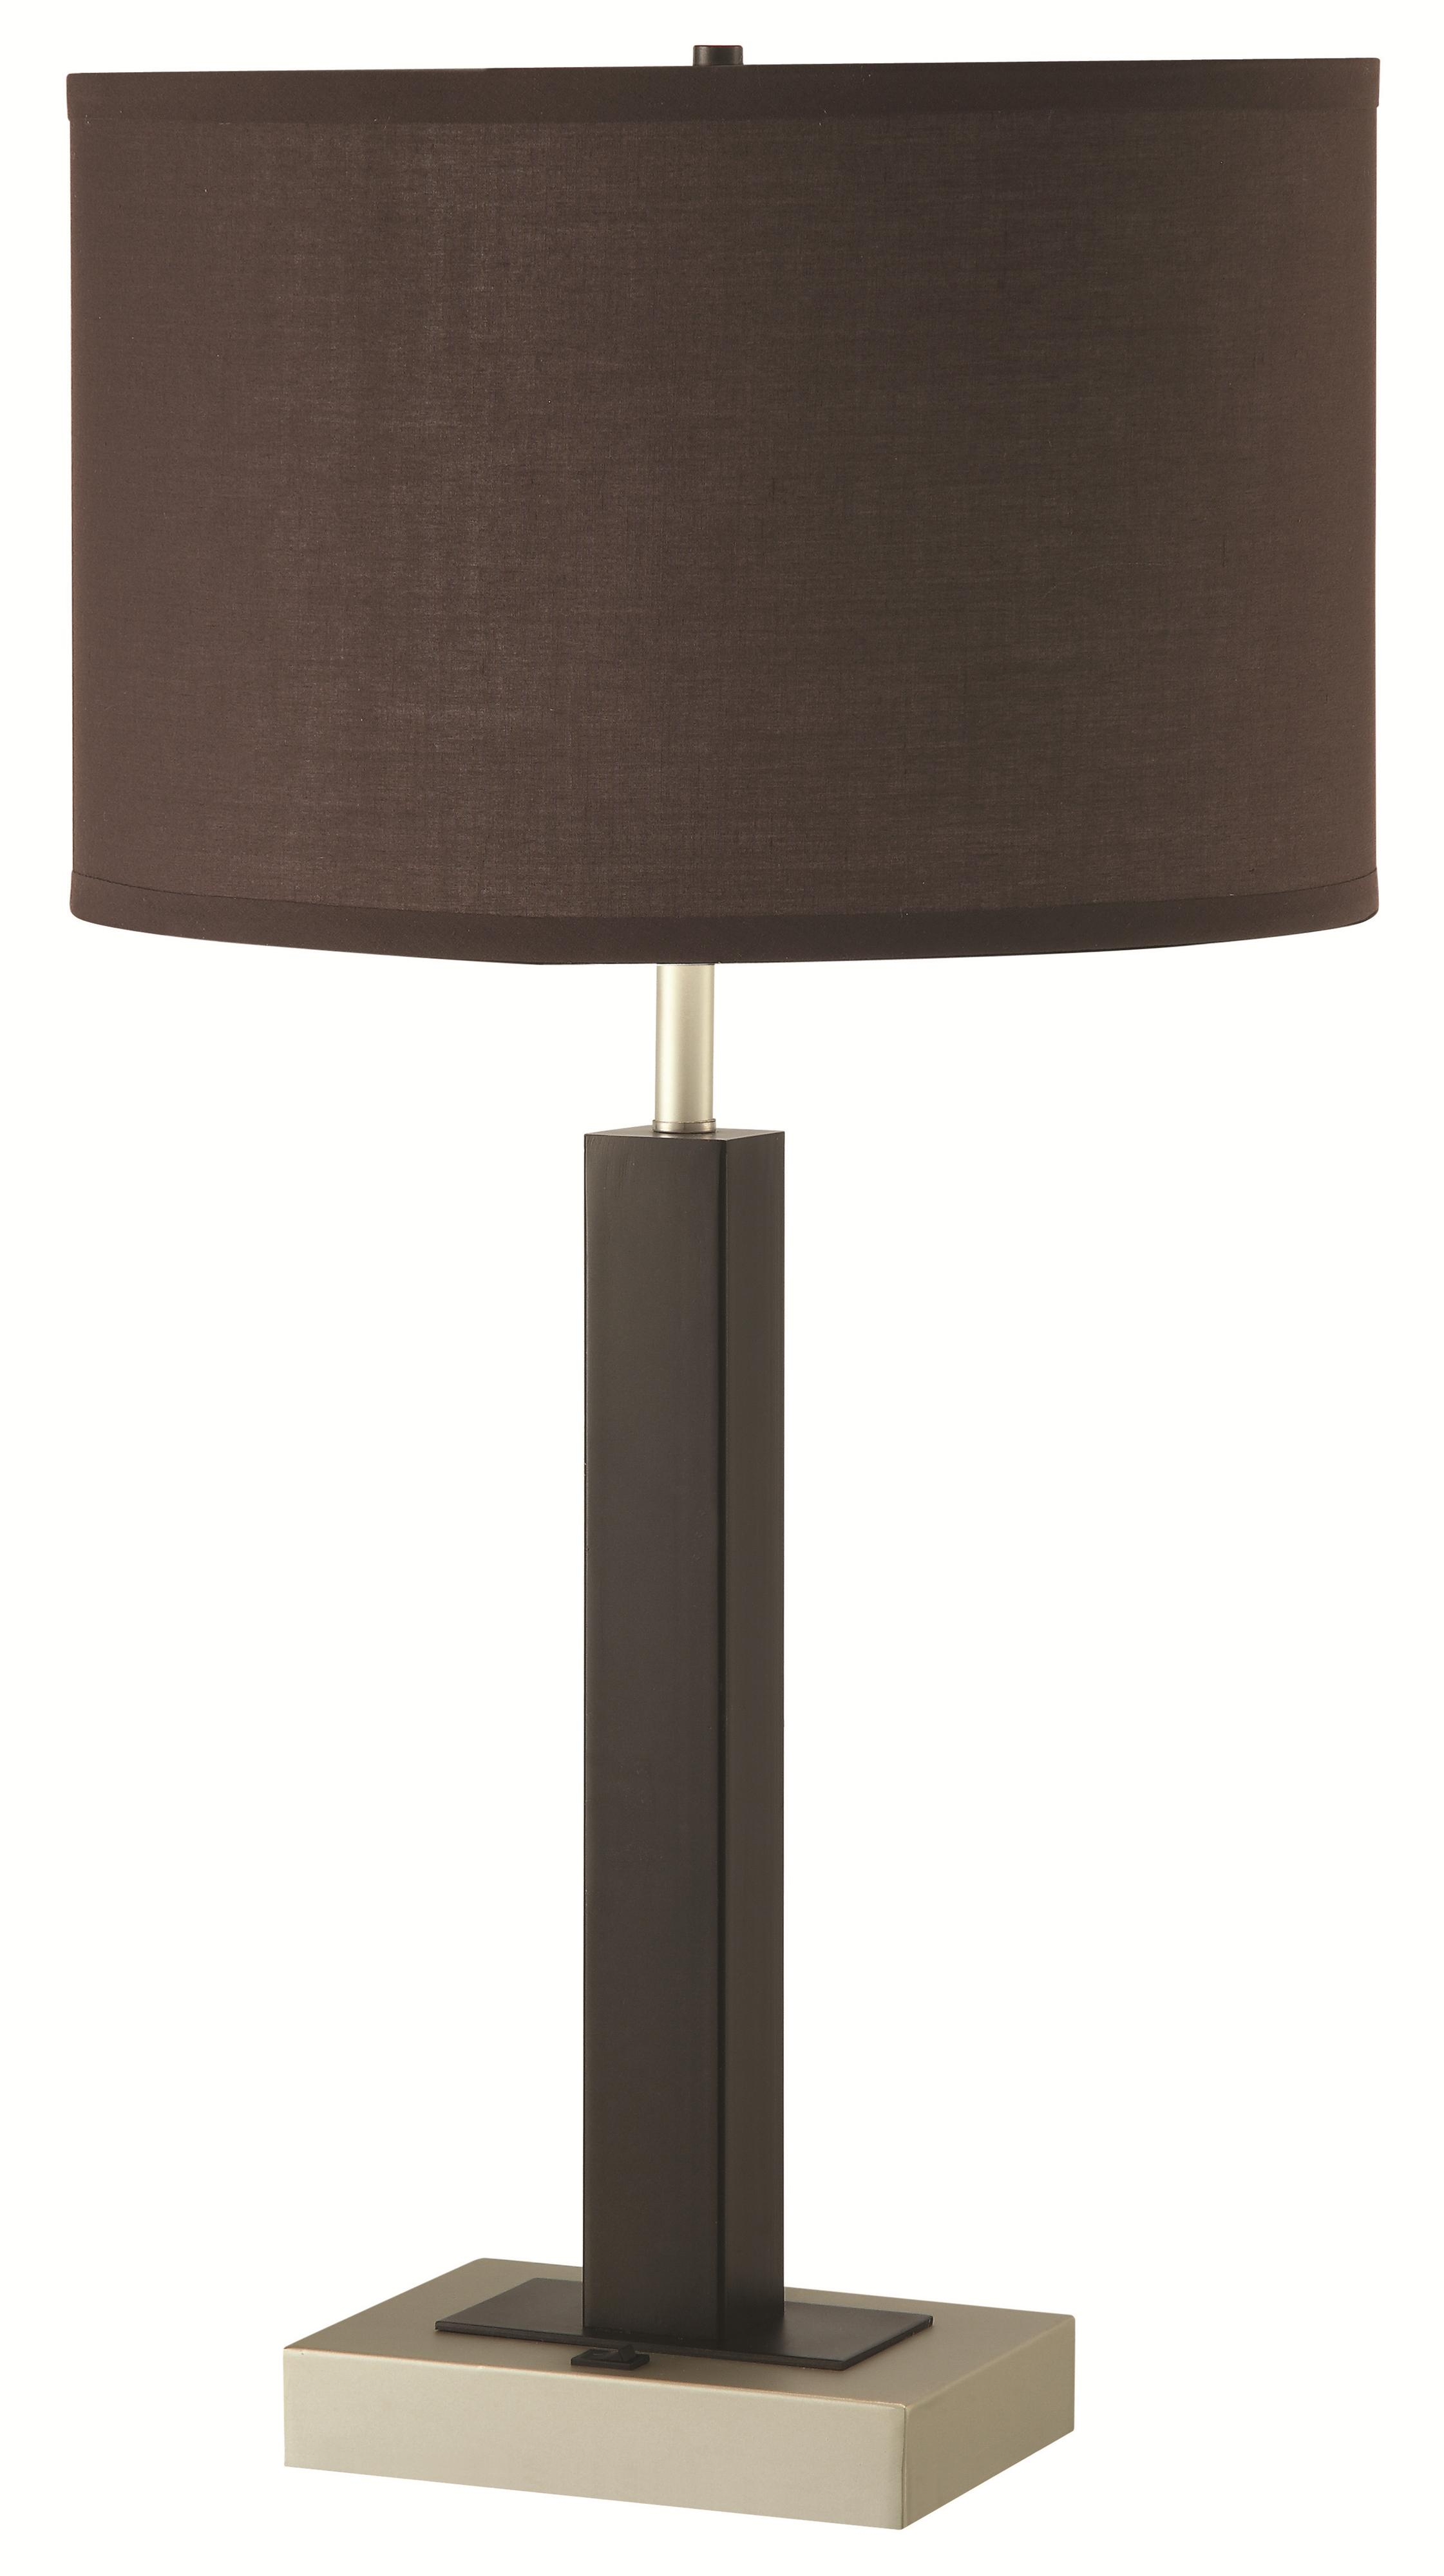 Coaster Table Lamps Table Lamp - Item Number: 901542